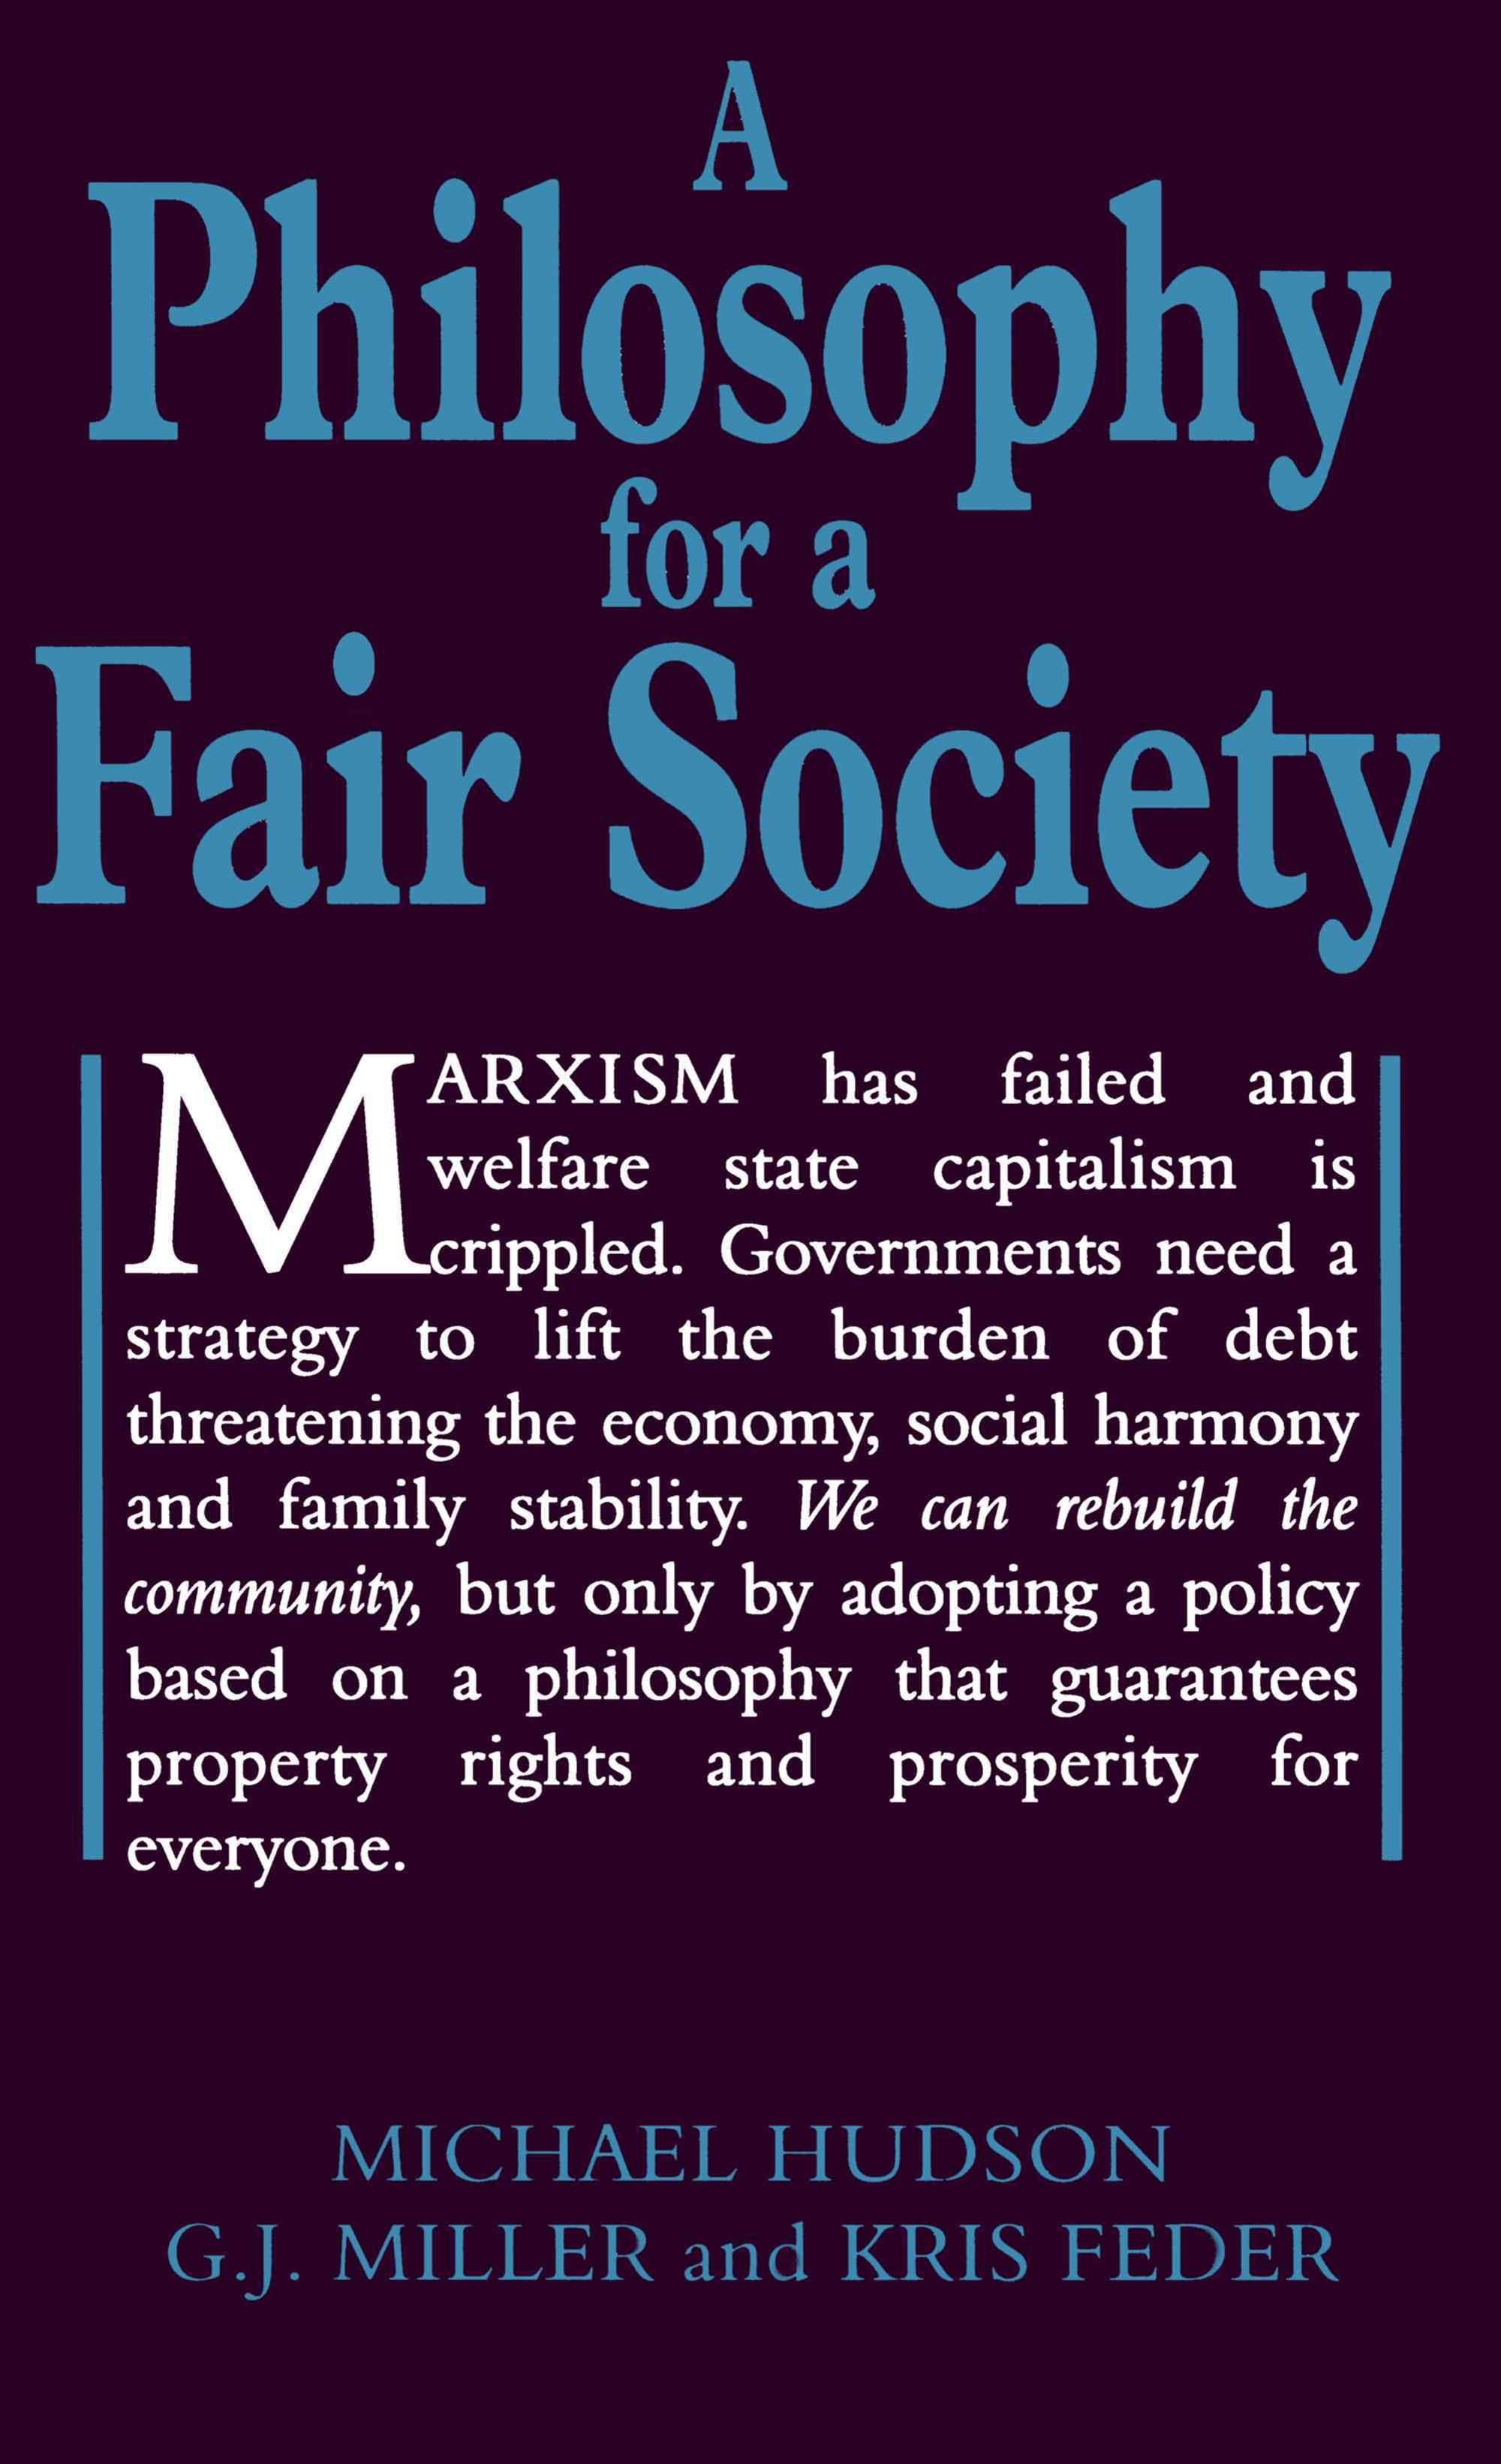 A Philosophy for a Fair Society - Michael Hudson